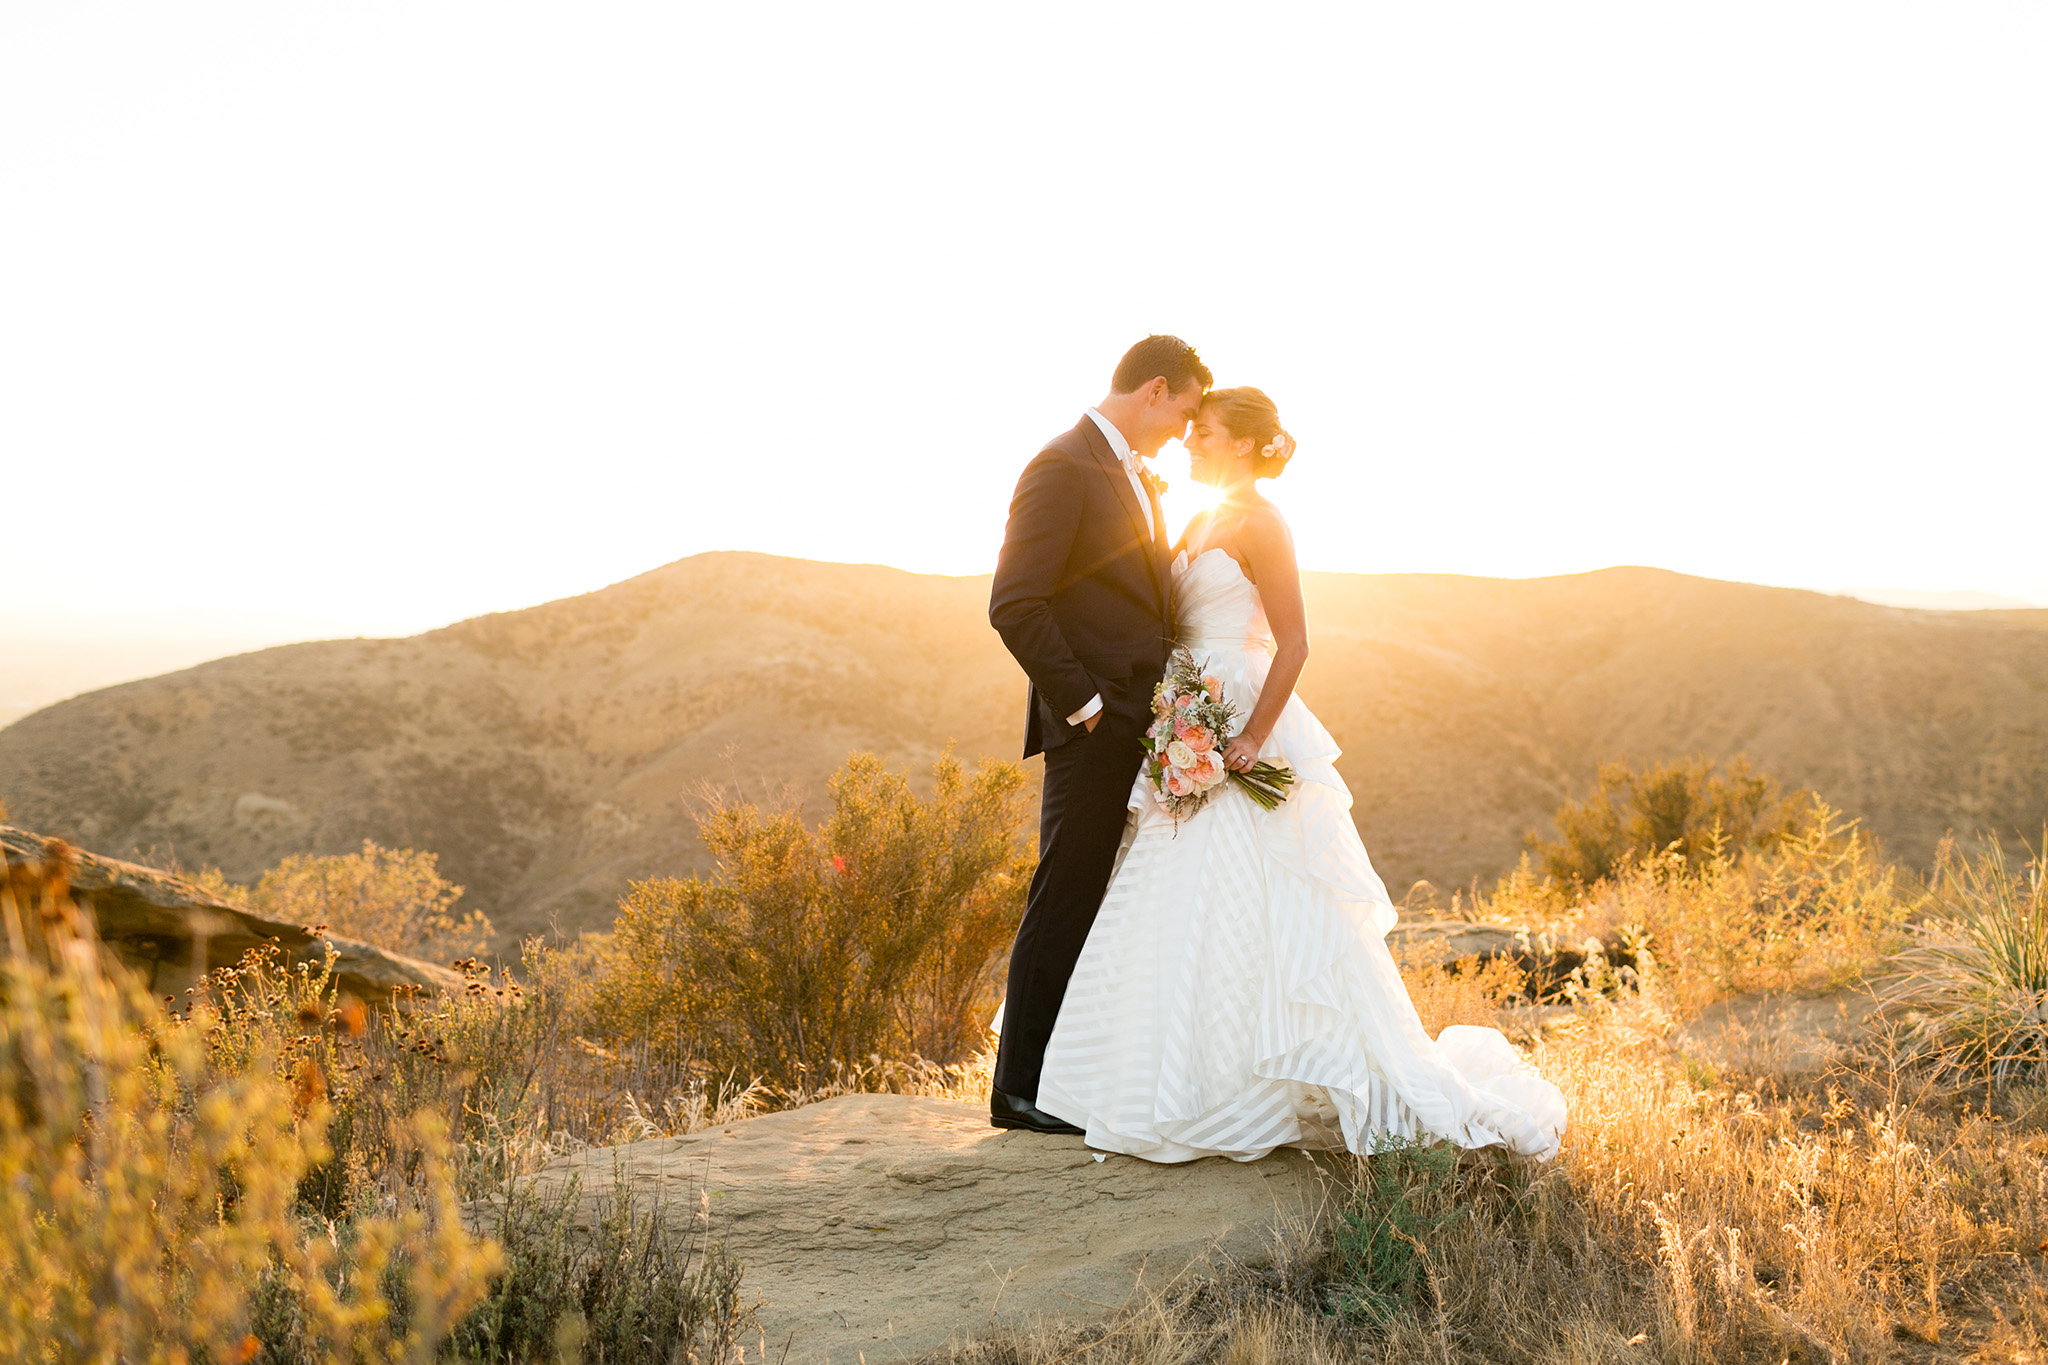 Bride and groom during sunset photos at Hummingbird Nest Ranch